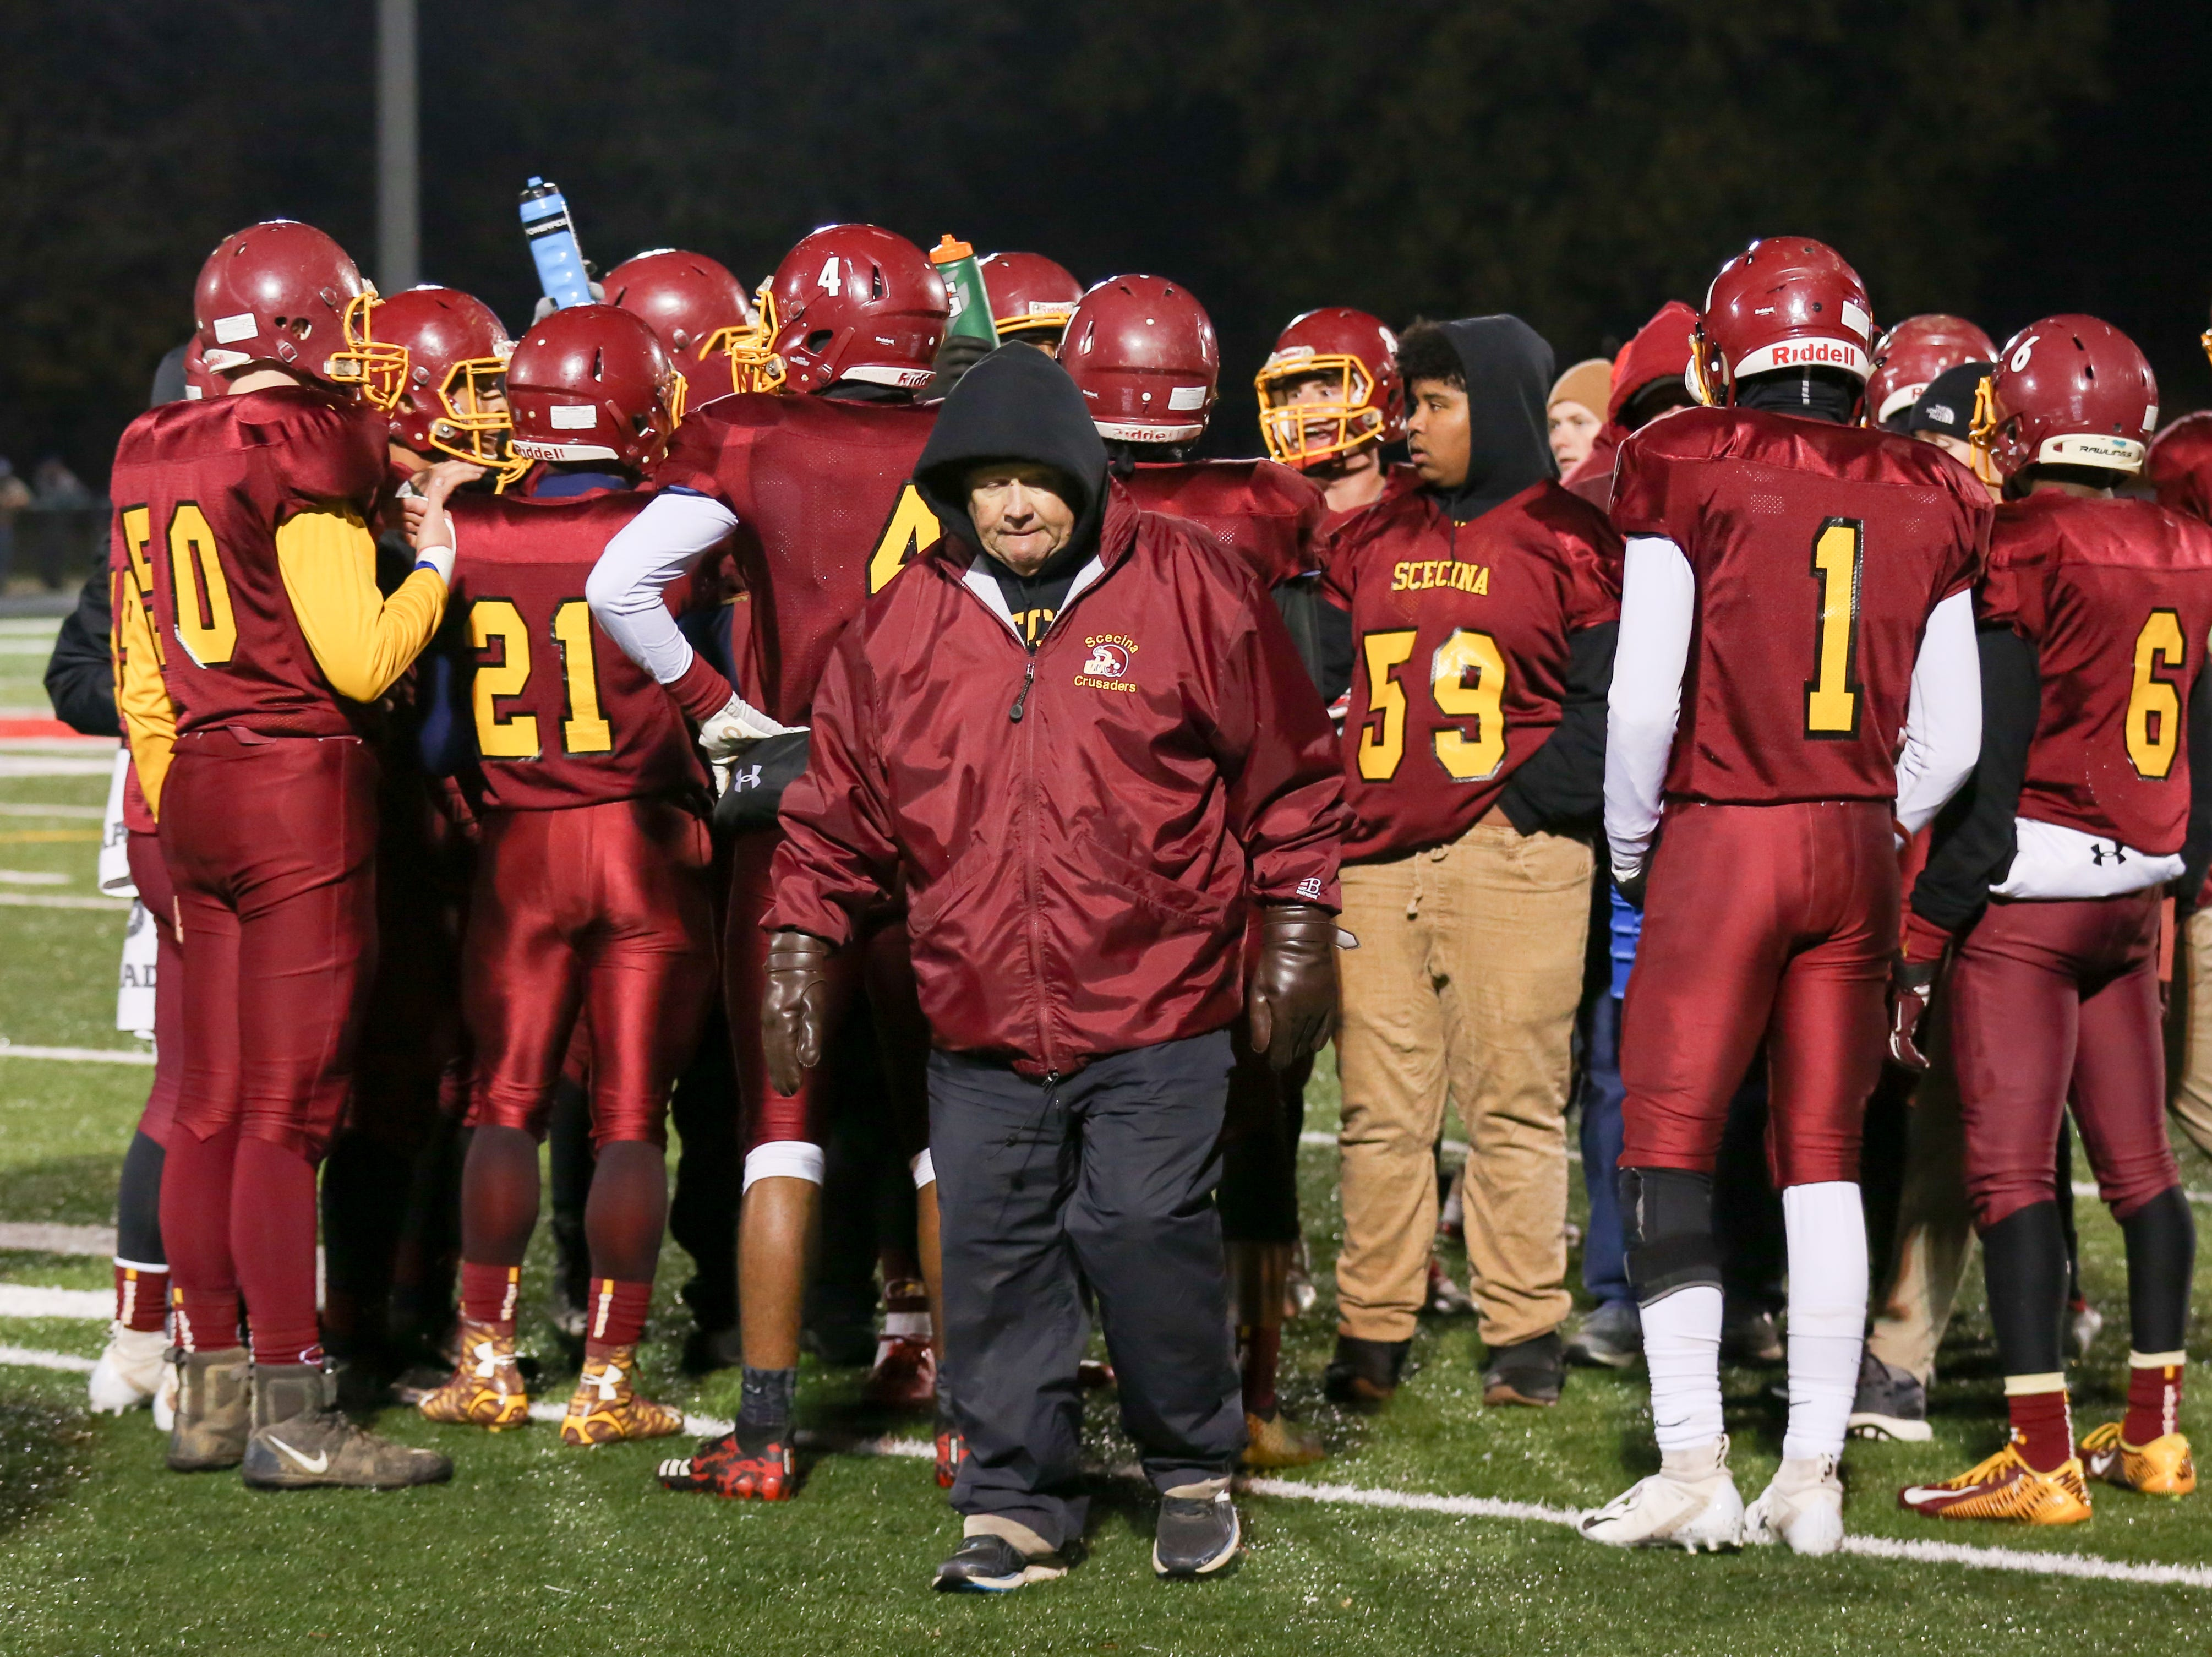 Scecina Coach Ott Hurrle gives instructions to his team during a time out during the first half of Indianapolis Scecina vs Western Boone High School varsity football in the Class 2A Regional Championship held at Roncalli High School, Friday, November 9, 2018.